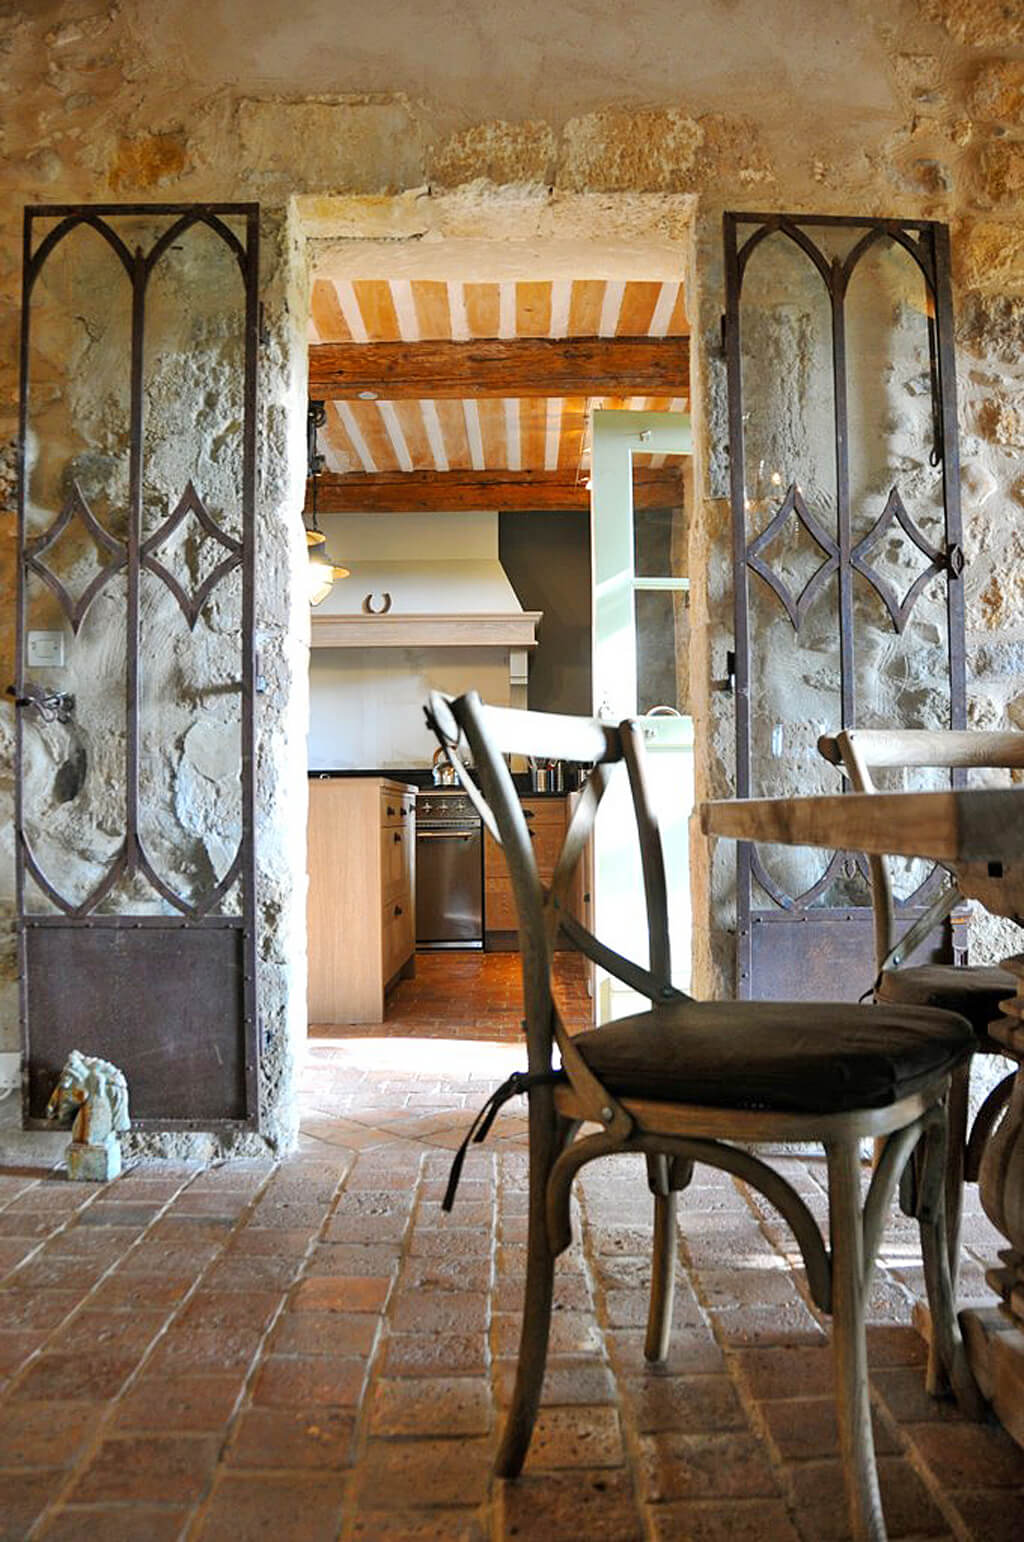 Come discover French Old World Design Inspiration: 18th Century Provençal Bastide + Paint Color Ideas! #frenchcountry #oldworld #interiordesign #provence